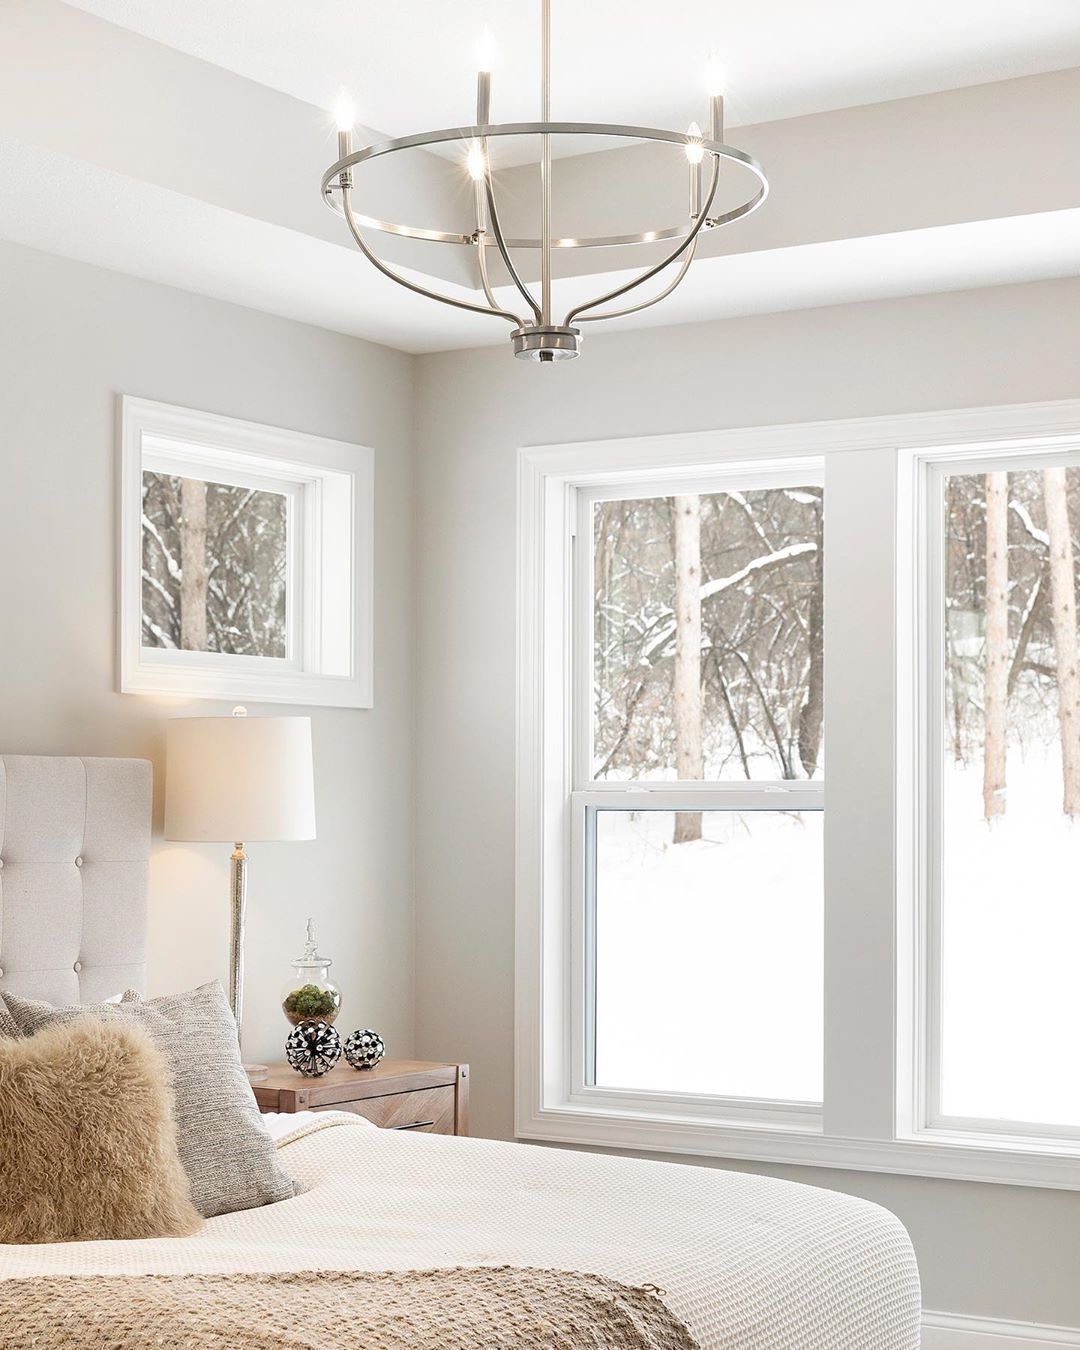 neutral paint colors 2020 interiors by color in 2020 on interior paint color schemes id=83375